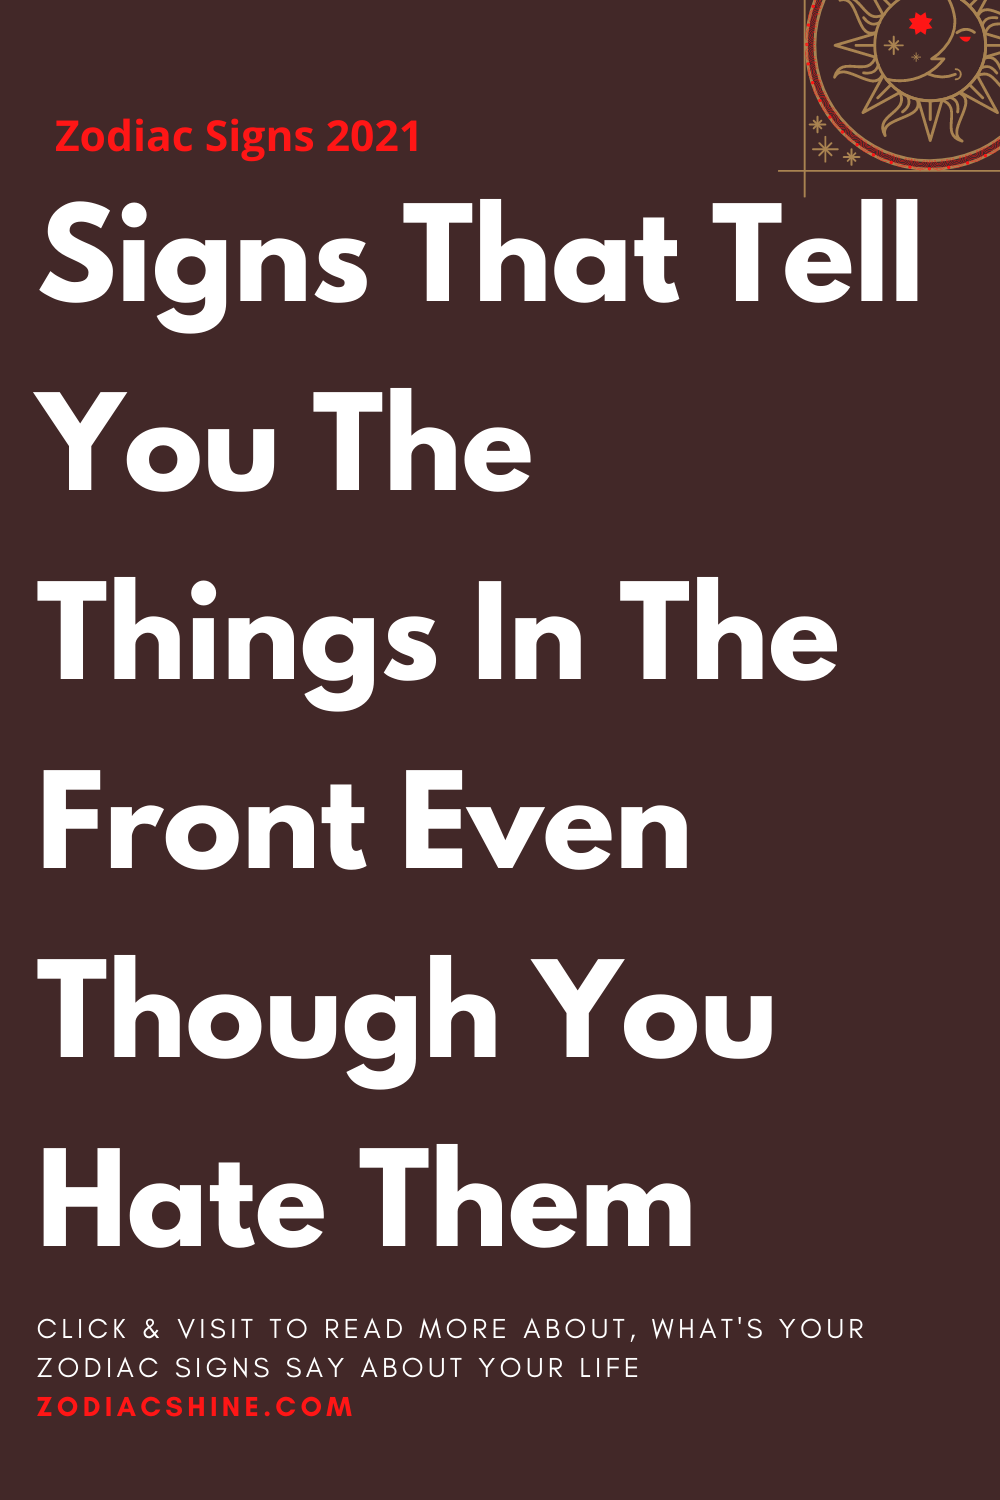 Signs That Tell You The Things In The Front Even Though You Hate Them